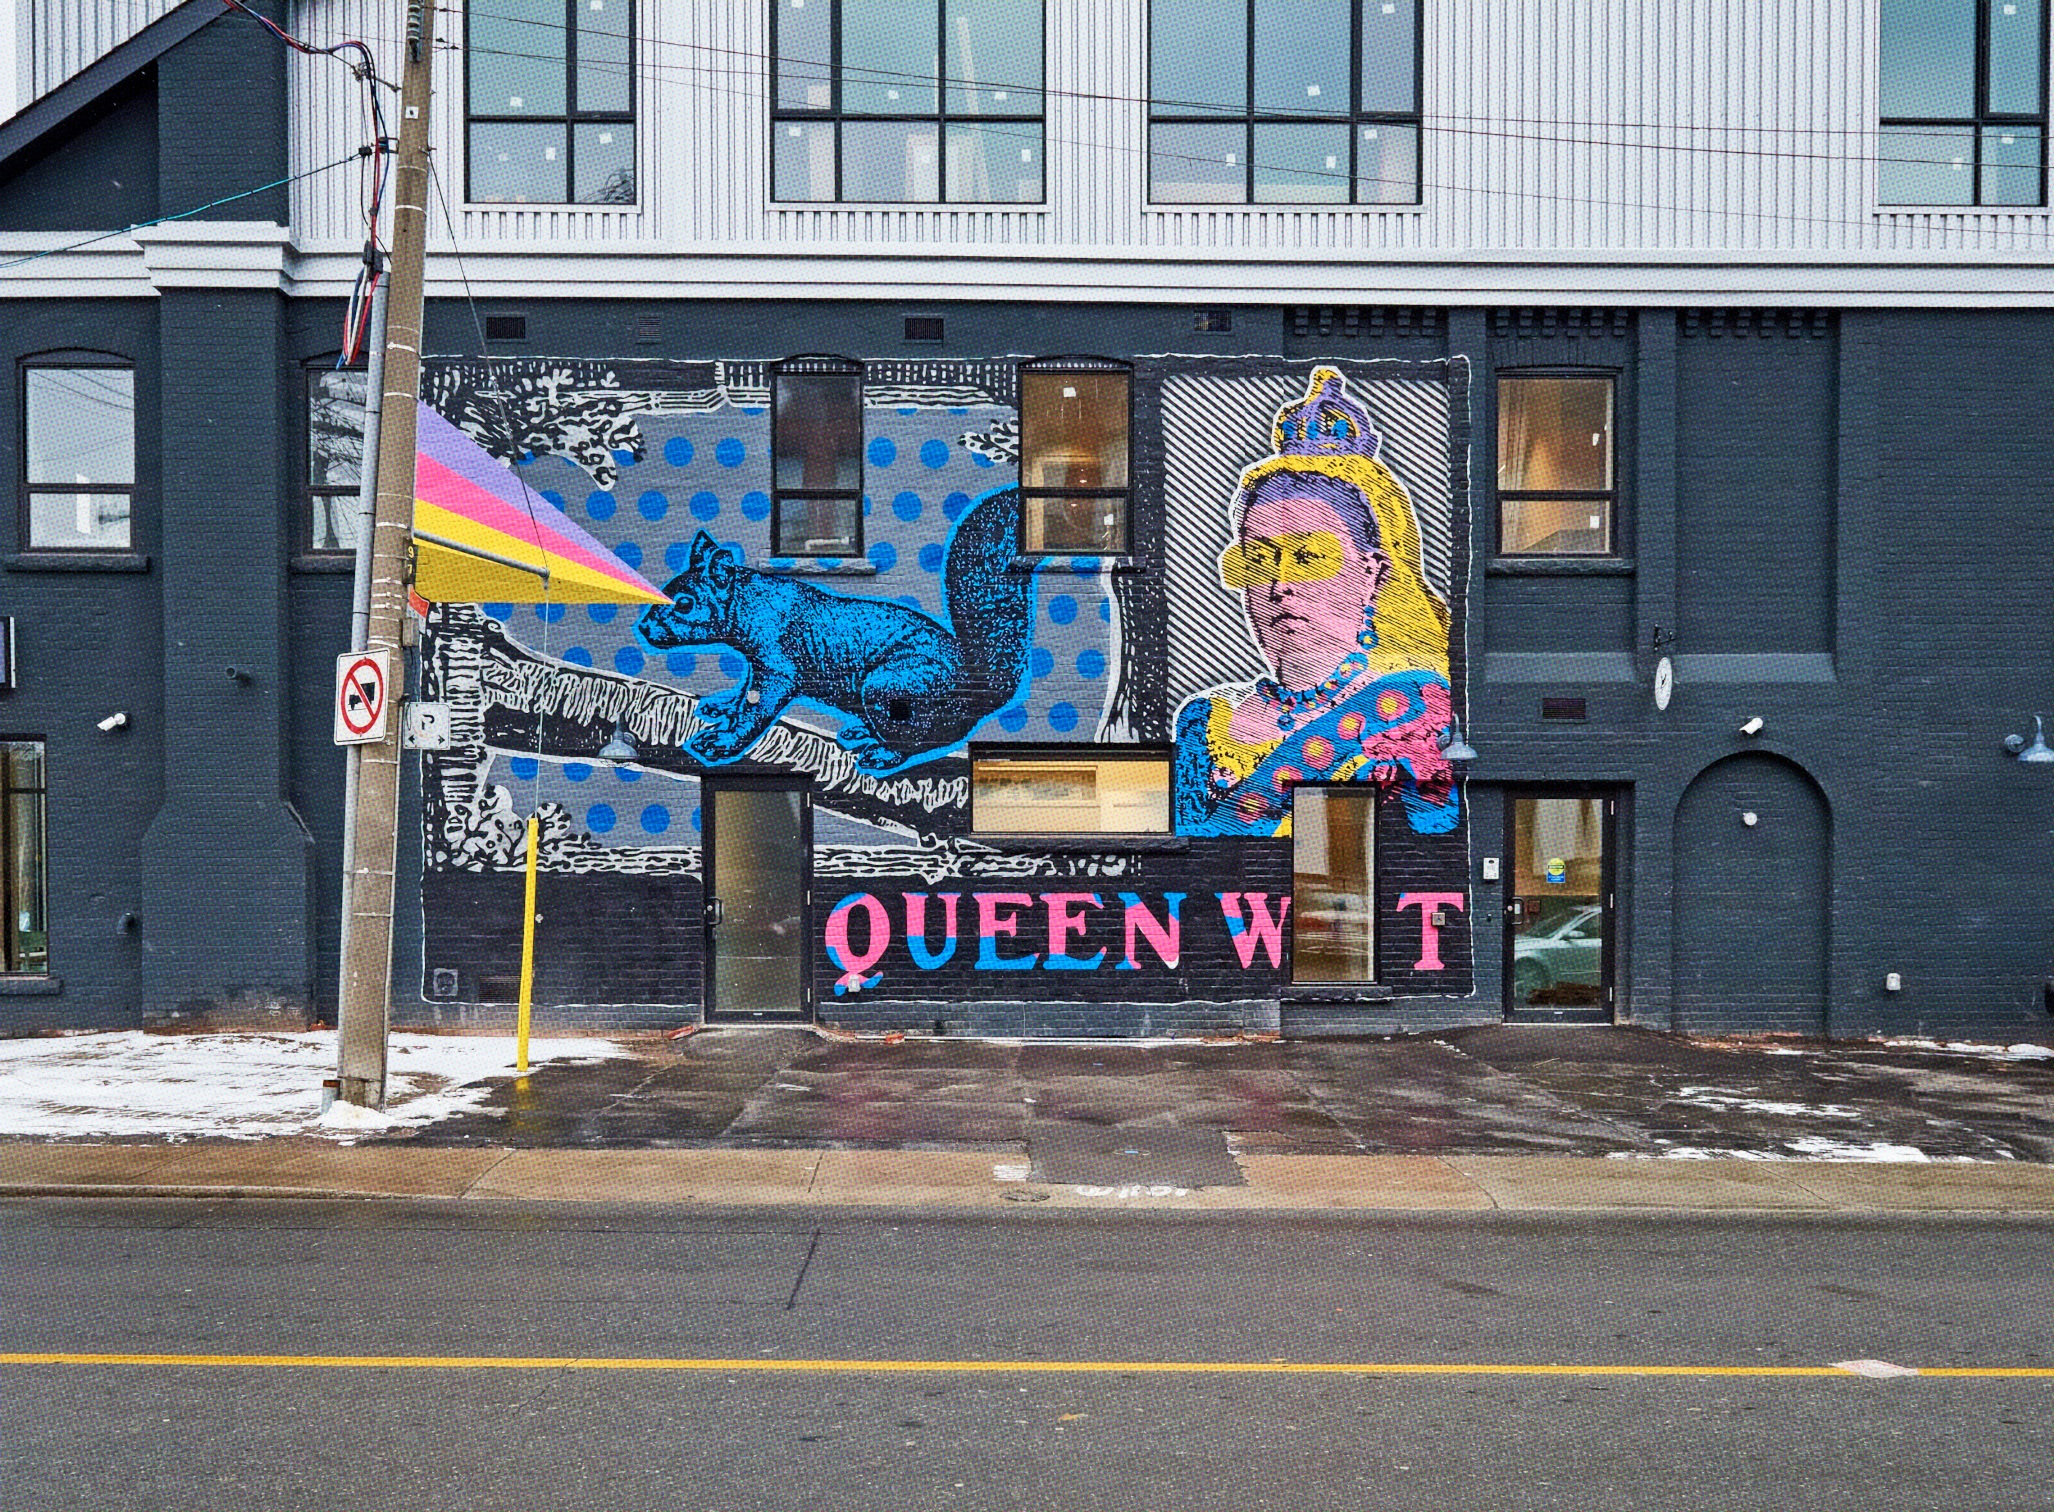 - Electric Coffin created a mural to identify the location and celebrate the artistic neighborhood.